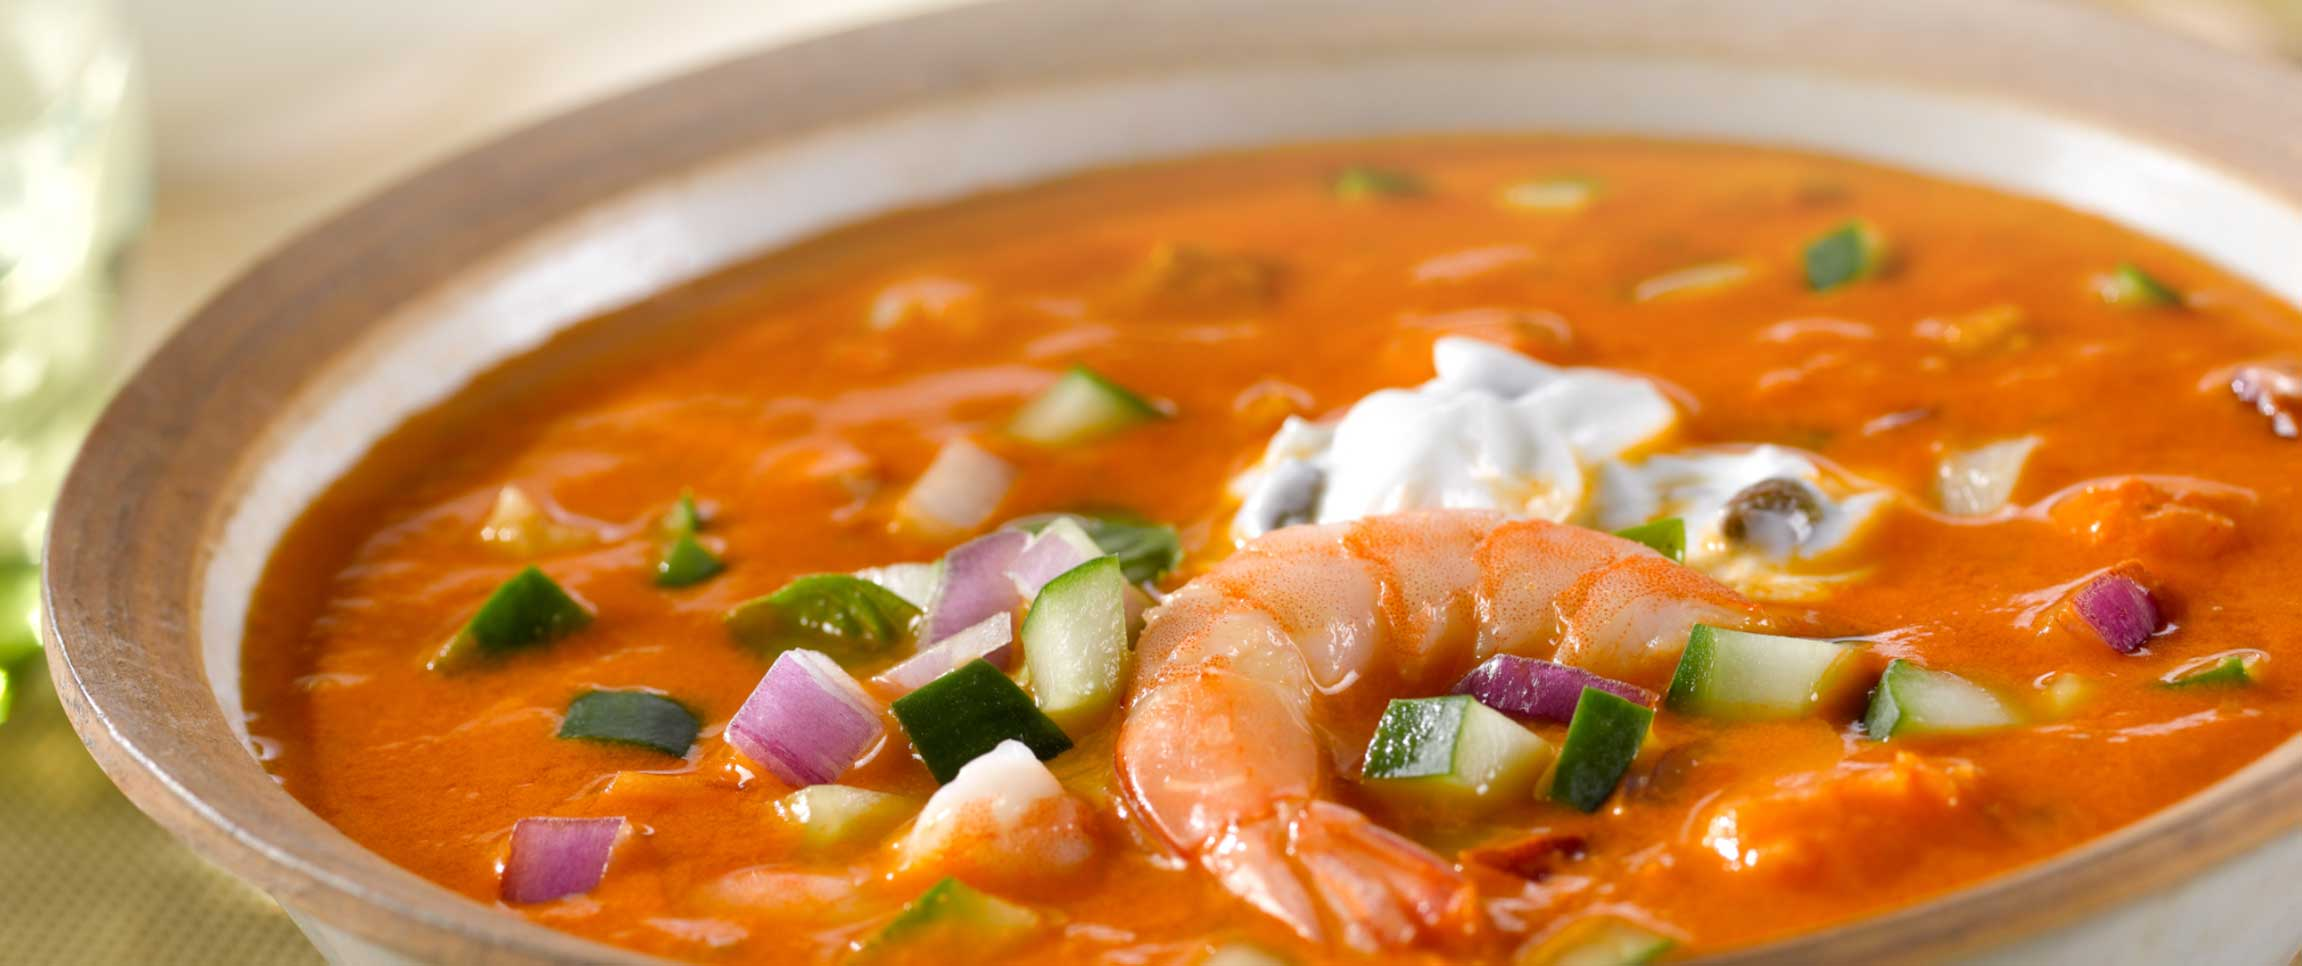 Tuscan Shrimp Gazpacho Soup in a white bowl